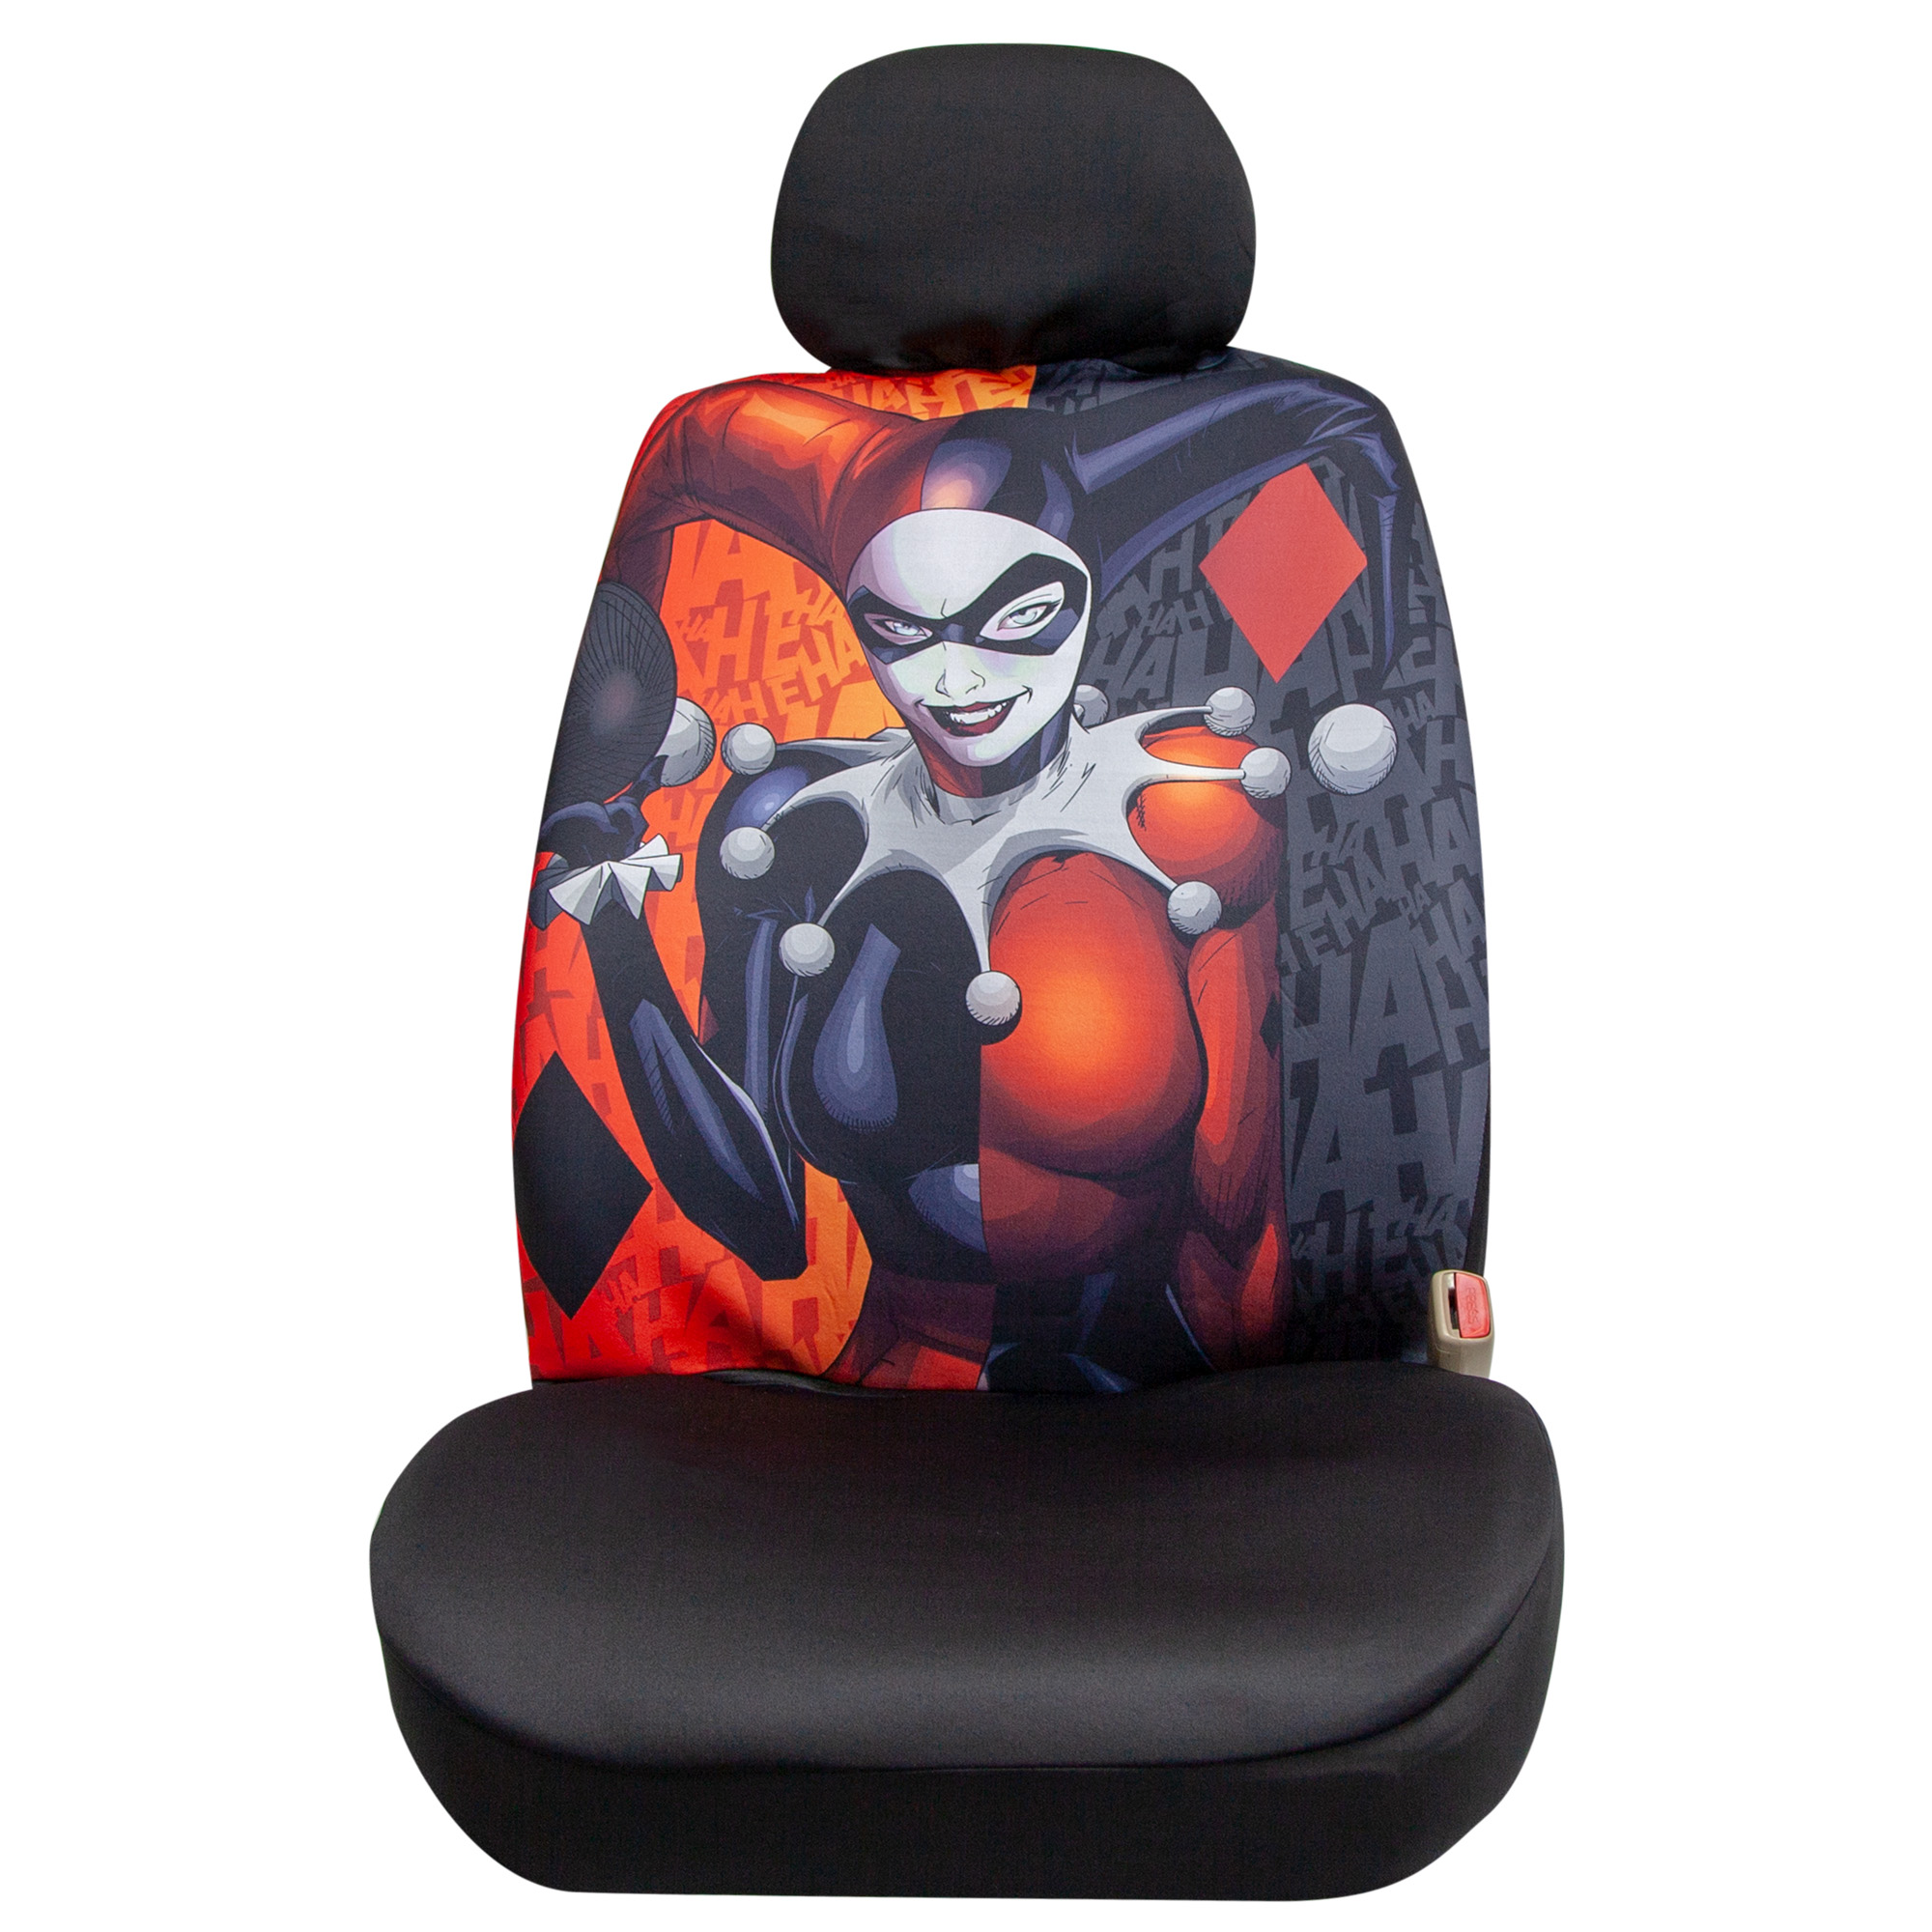 Batman Harley Quinn Lowback Seat Cover with Headrest Cover